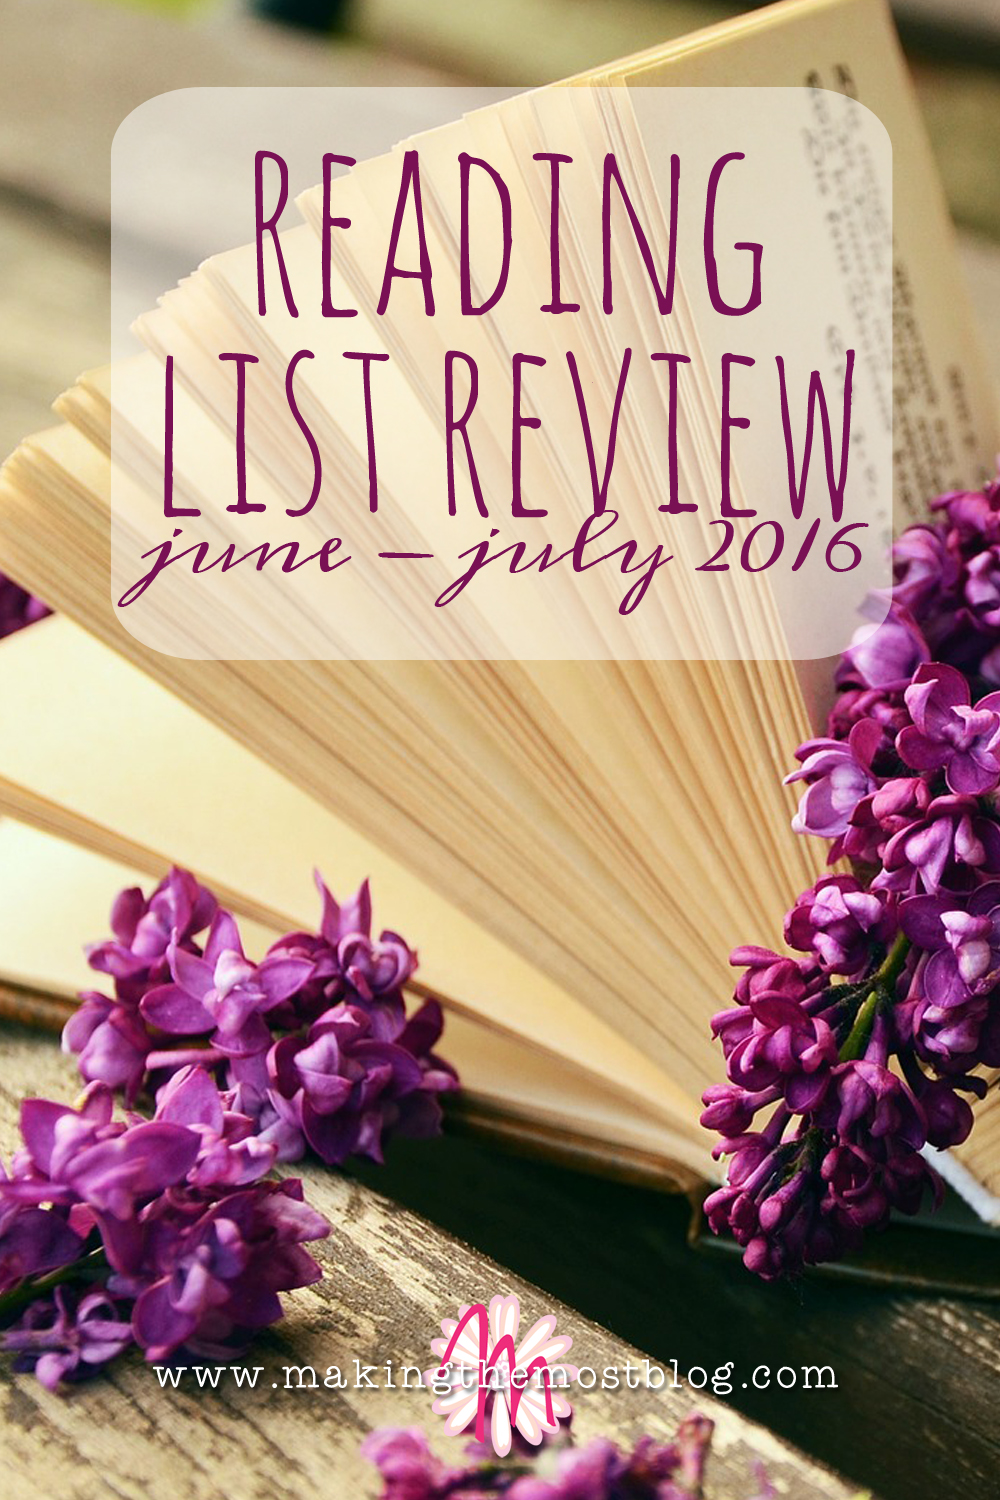 Reading List Review: June-July 2016 | Making the Most Blog